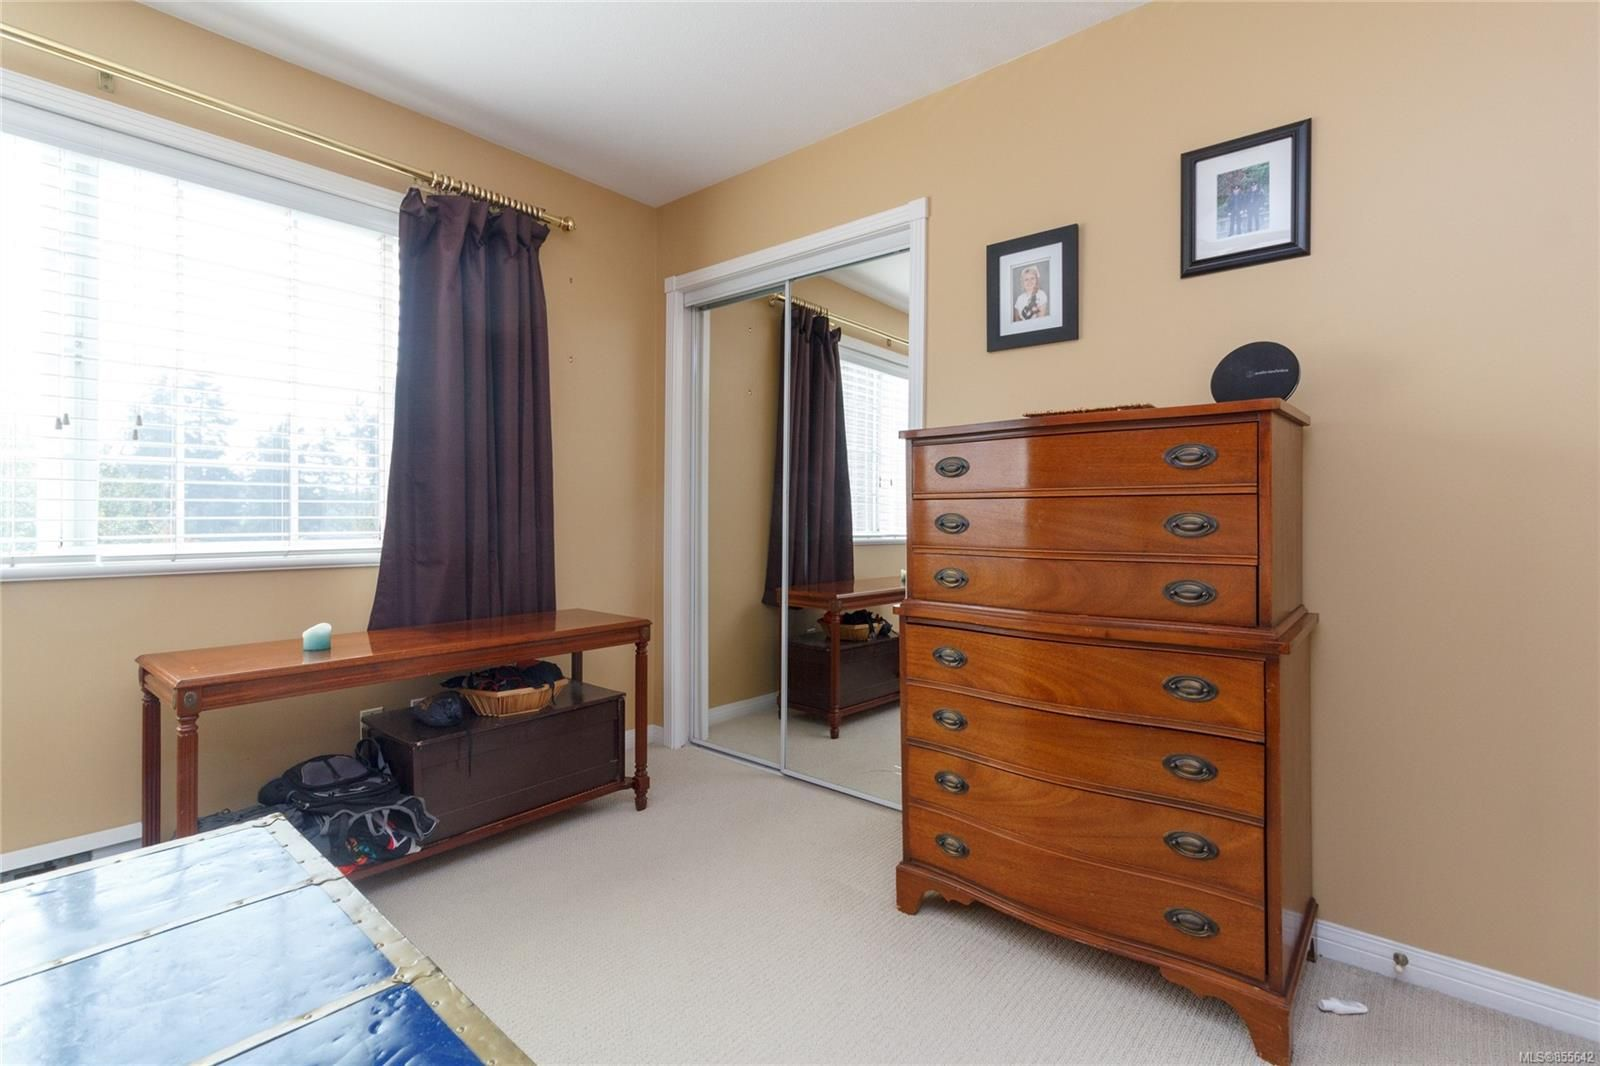 Photo 14: Photos: 52 14 Erskine Lane in : VR Hospital Row/Townhouse for sale (View Royal)  : MLS®# 855642